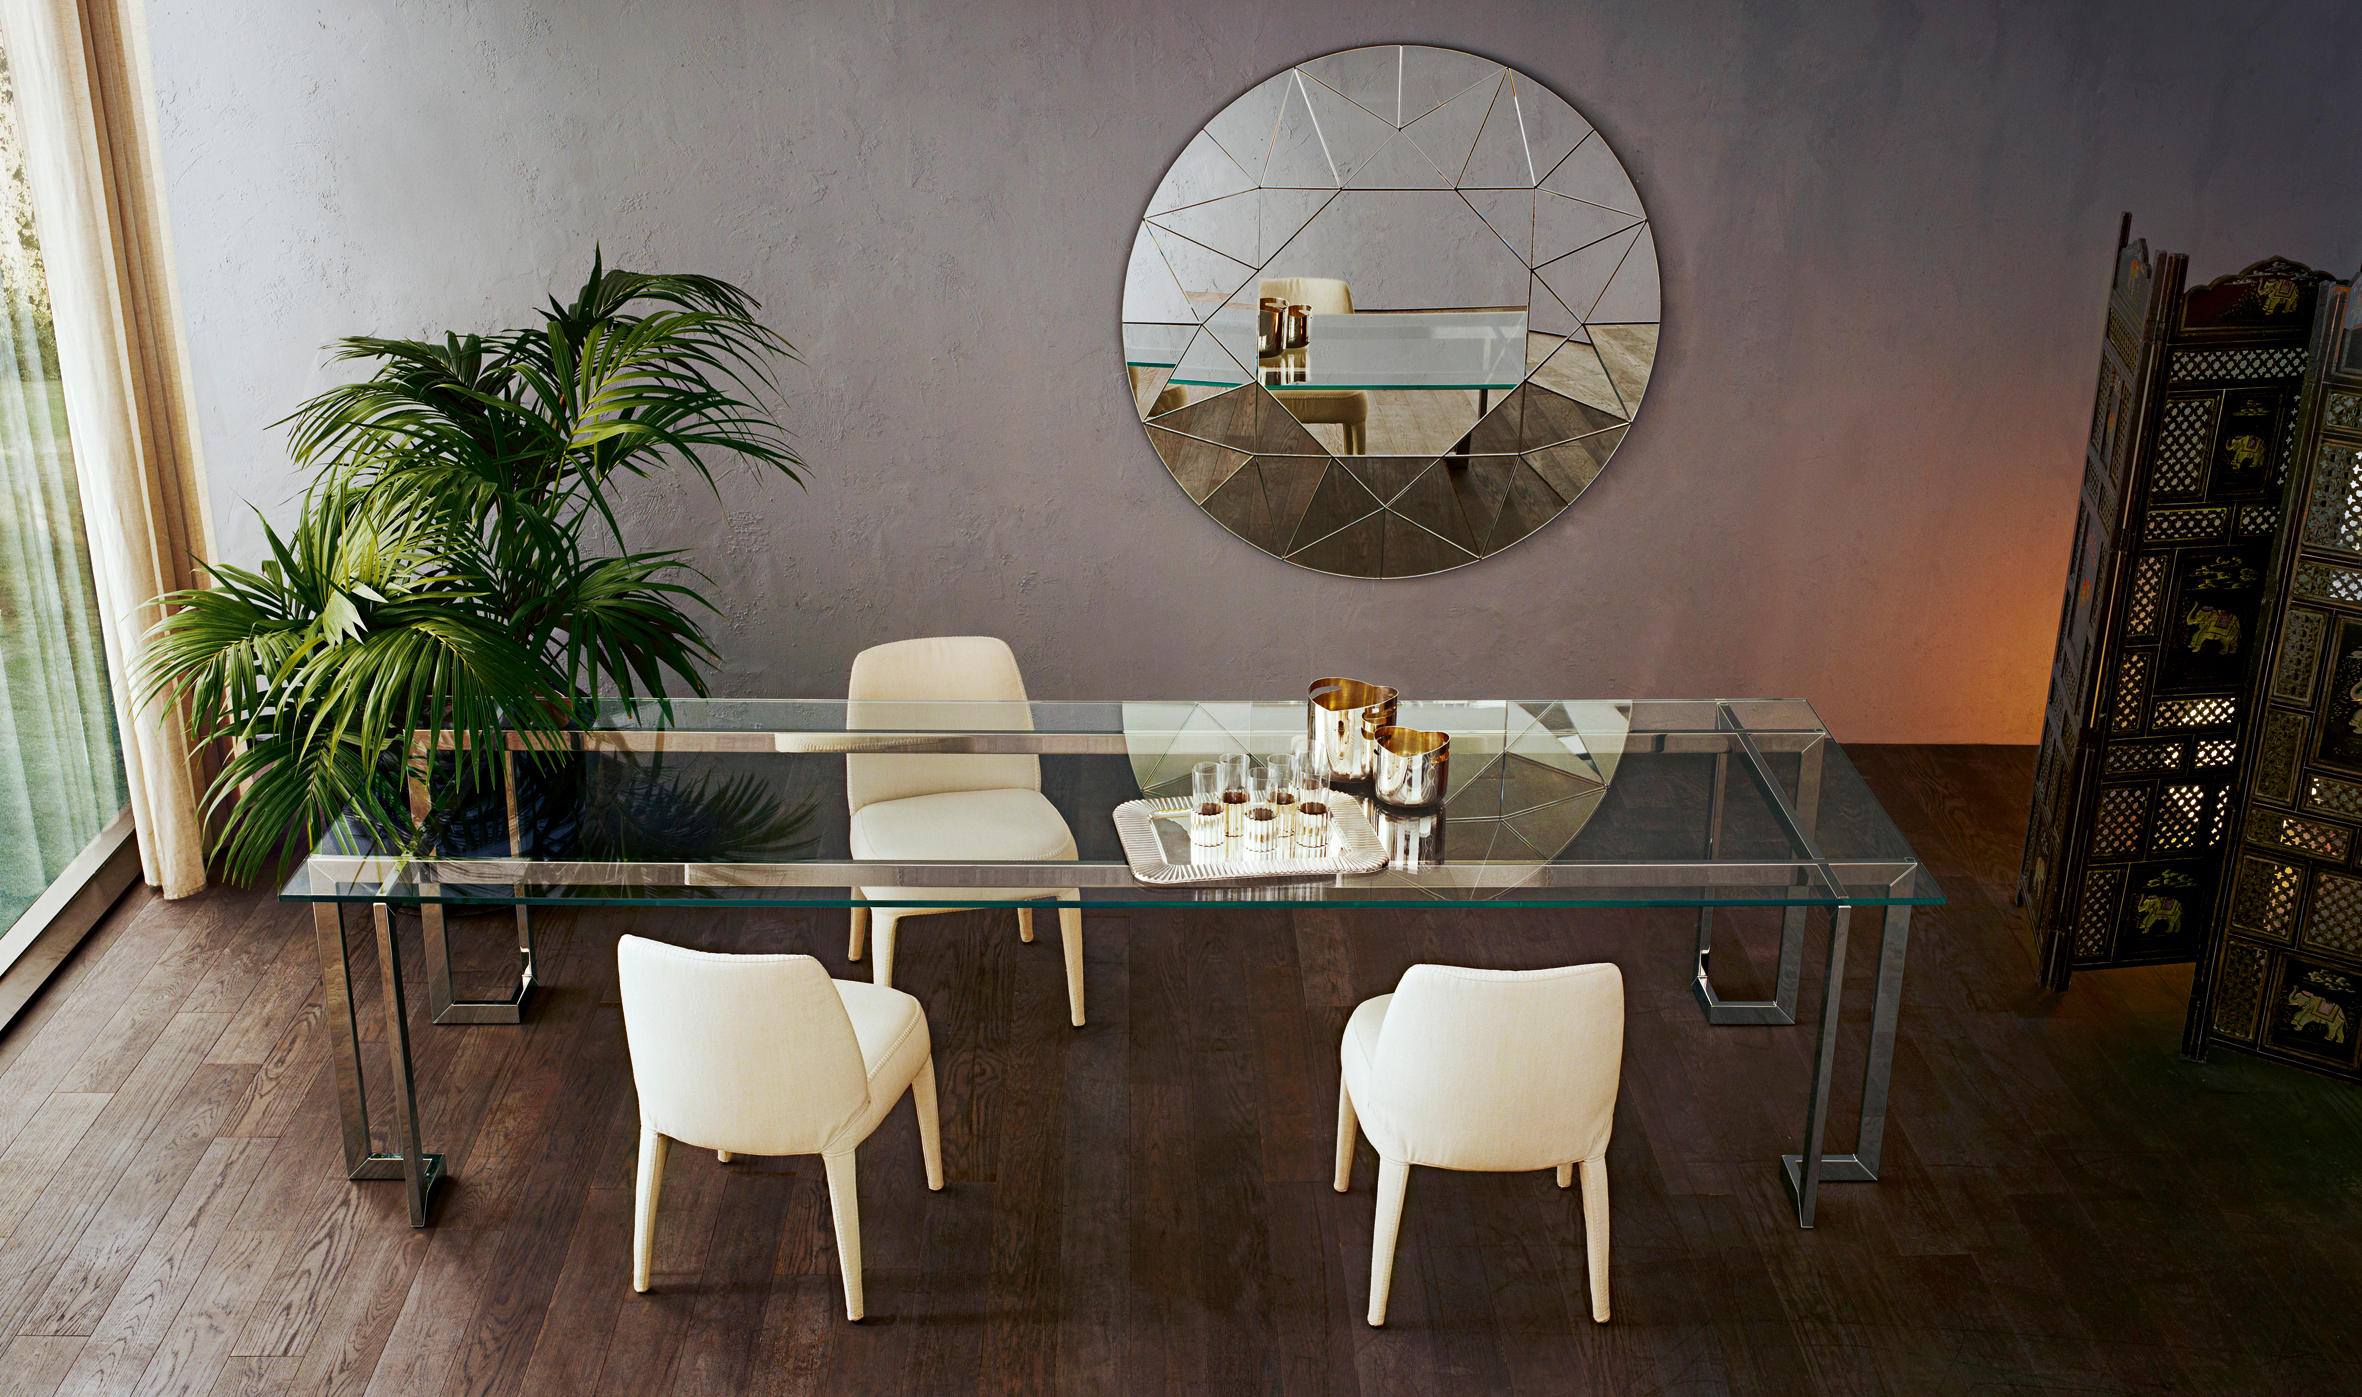 lord dining tables from gallotti radice architonic. Black Bedroom Furniture Sets. Home Design Ideas